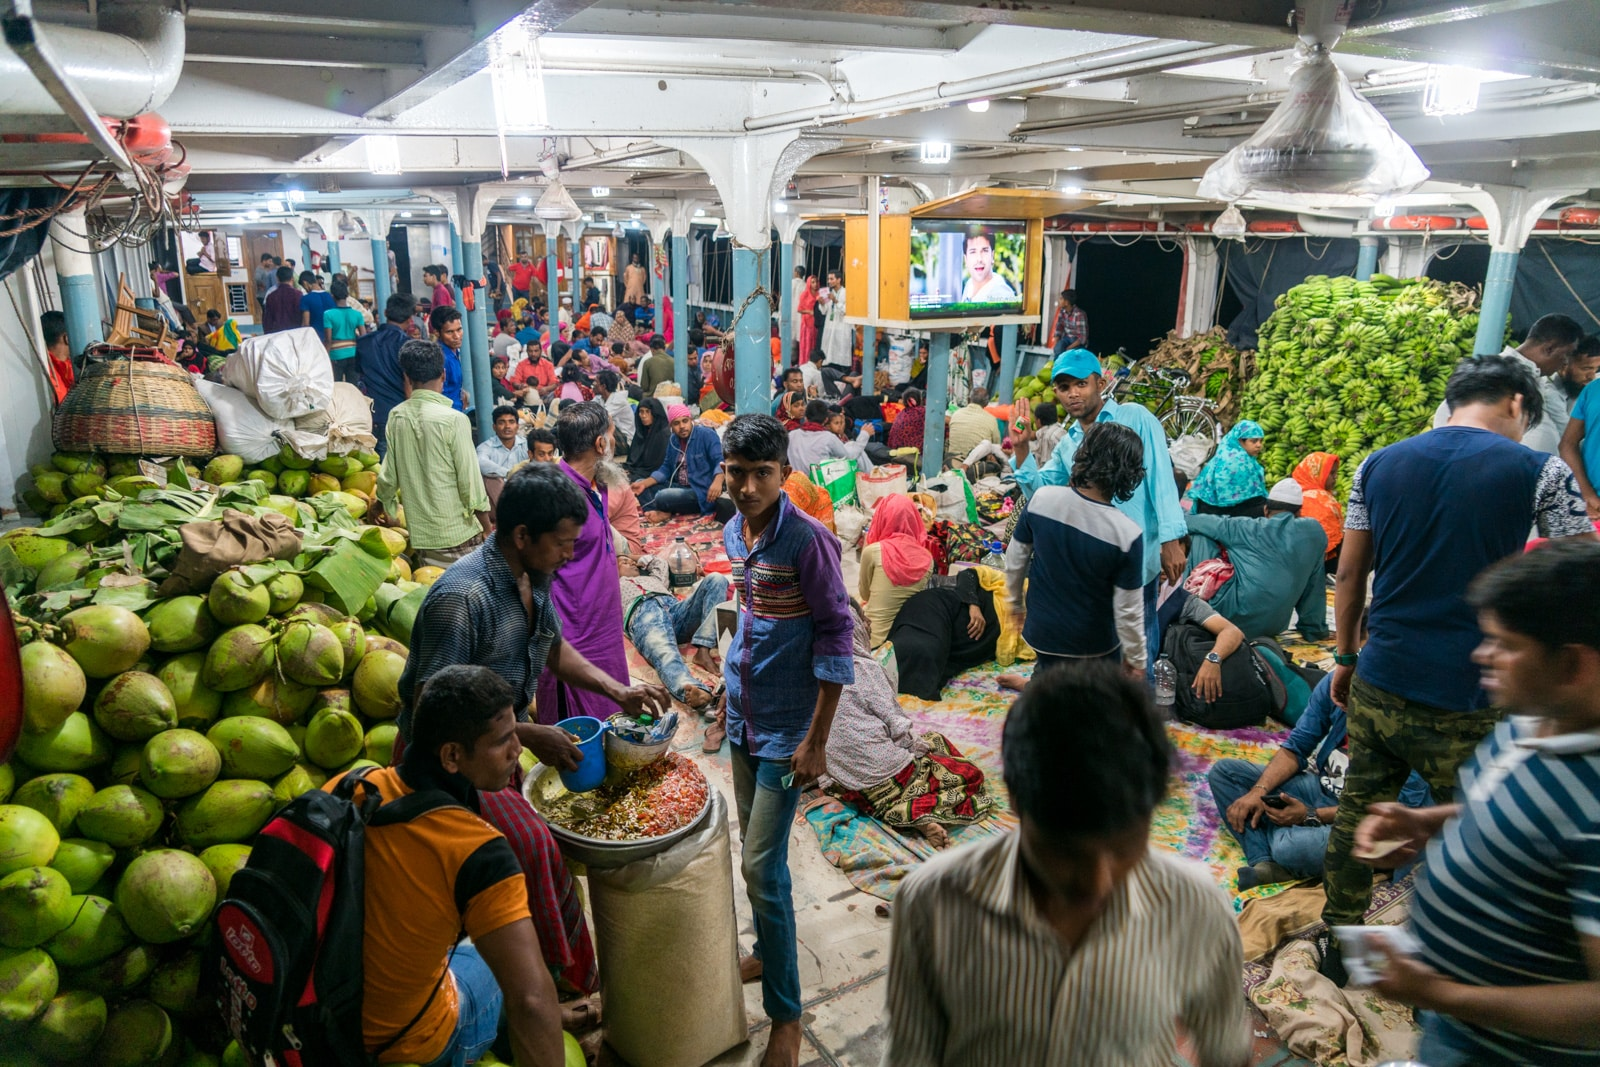 Launches from Hularhat to Dhaka, Bangladesh - Below deck of boat filled with people at night - Lost With Purpose travel blog